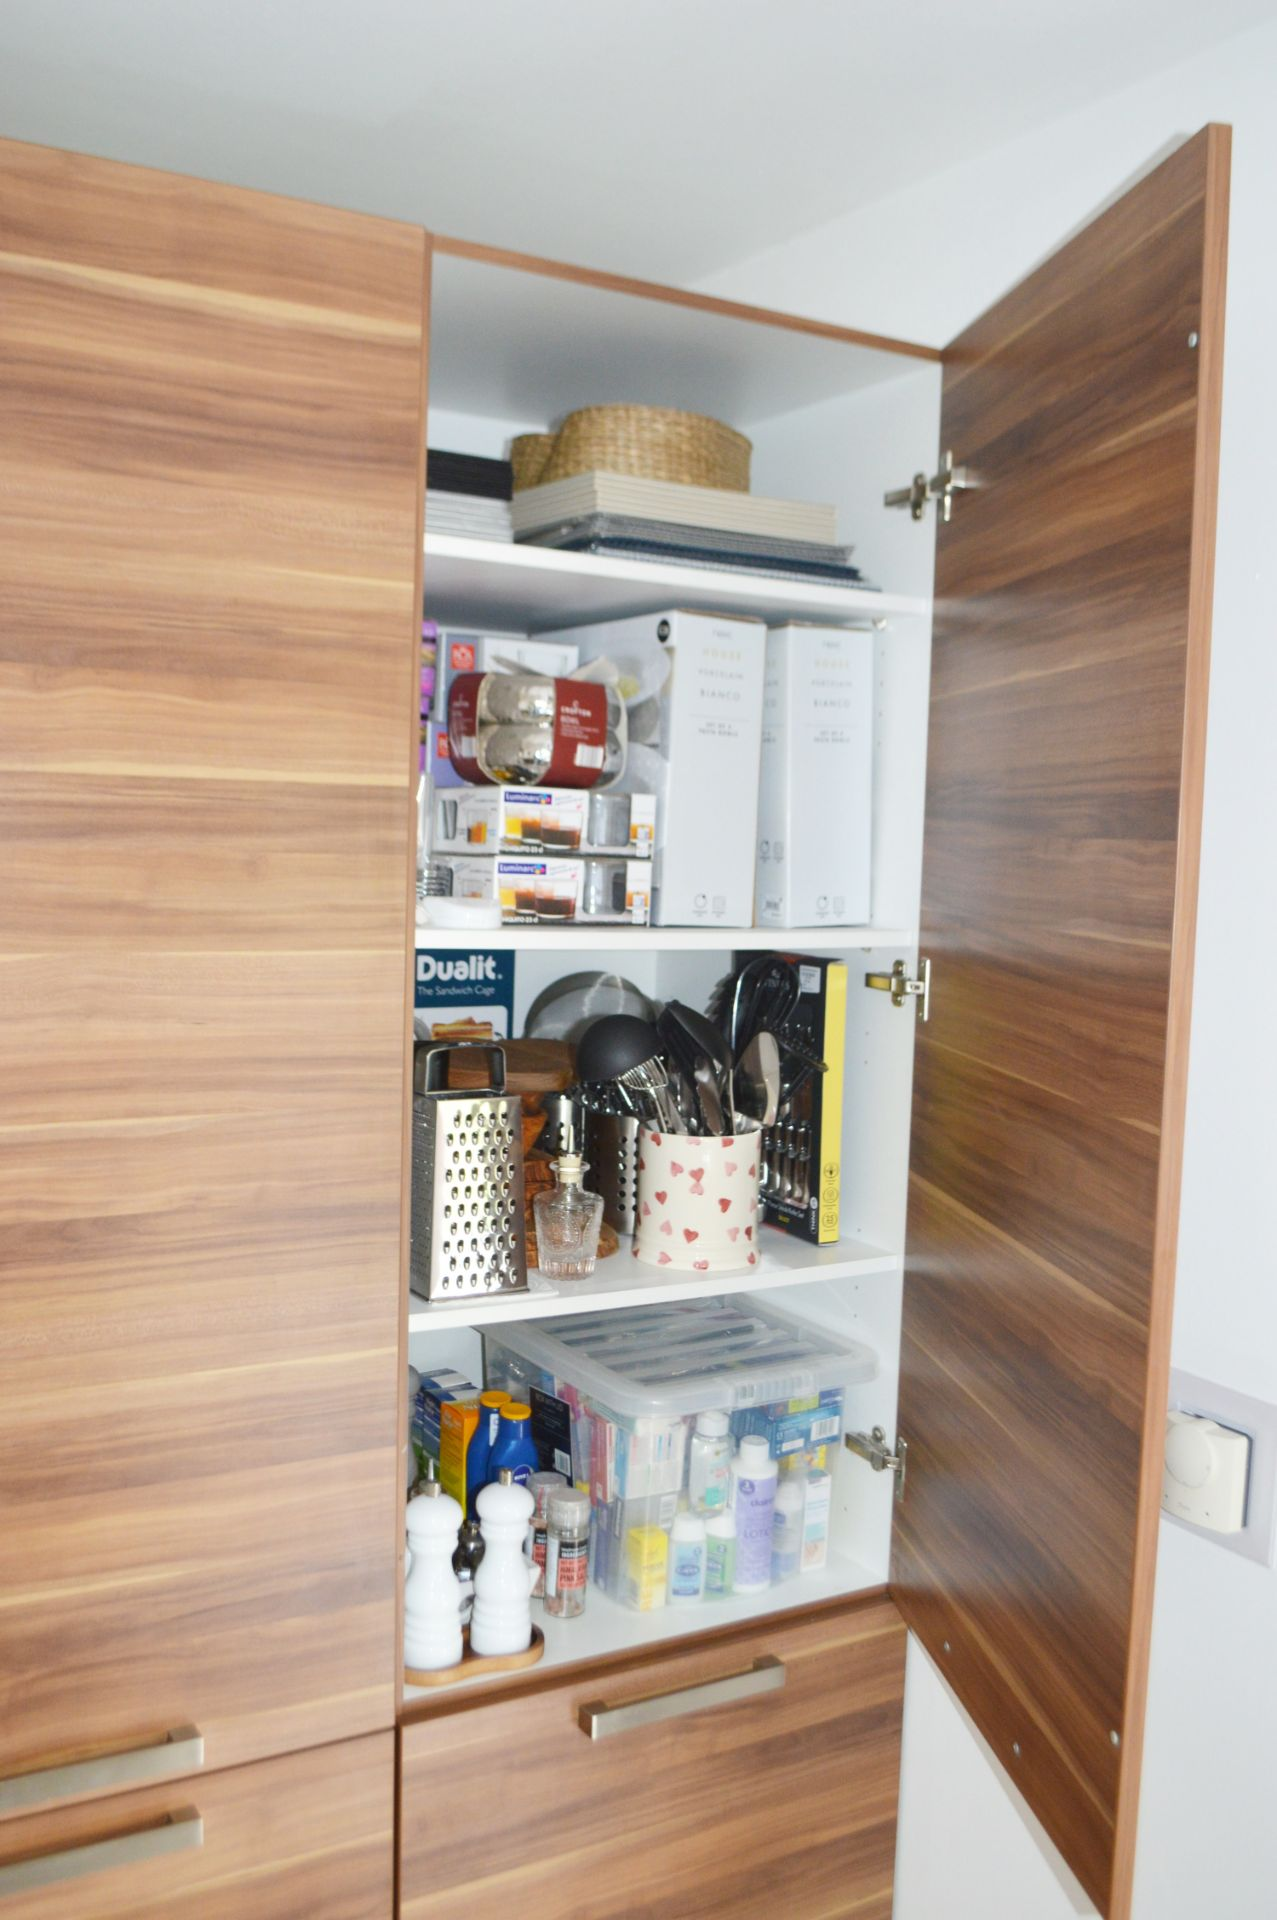 1 x Contemporary Bespoke Fitted Kitchen With Integrated Neff Branded Appliances, Quartz Worktops - Image 52 of 52